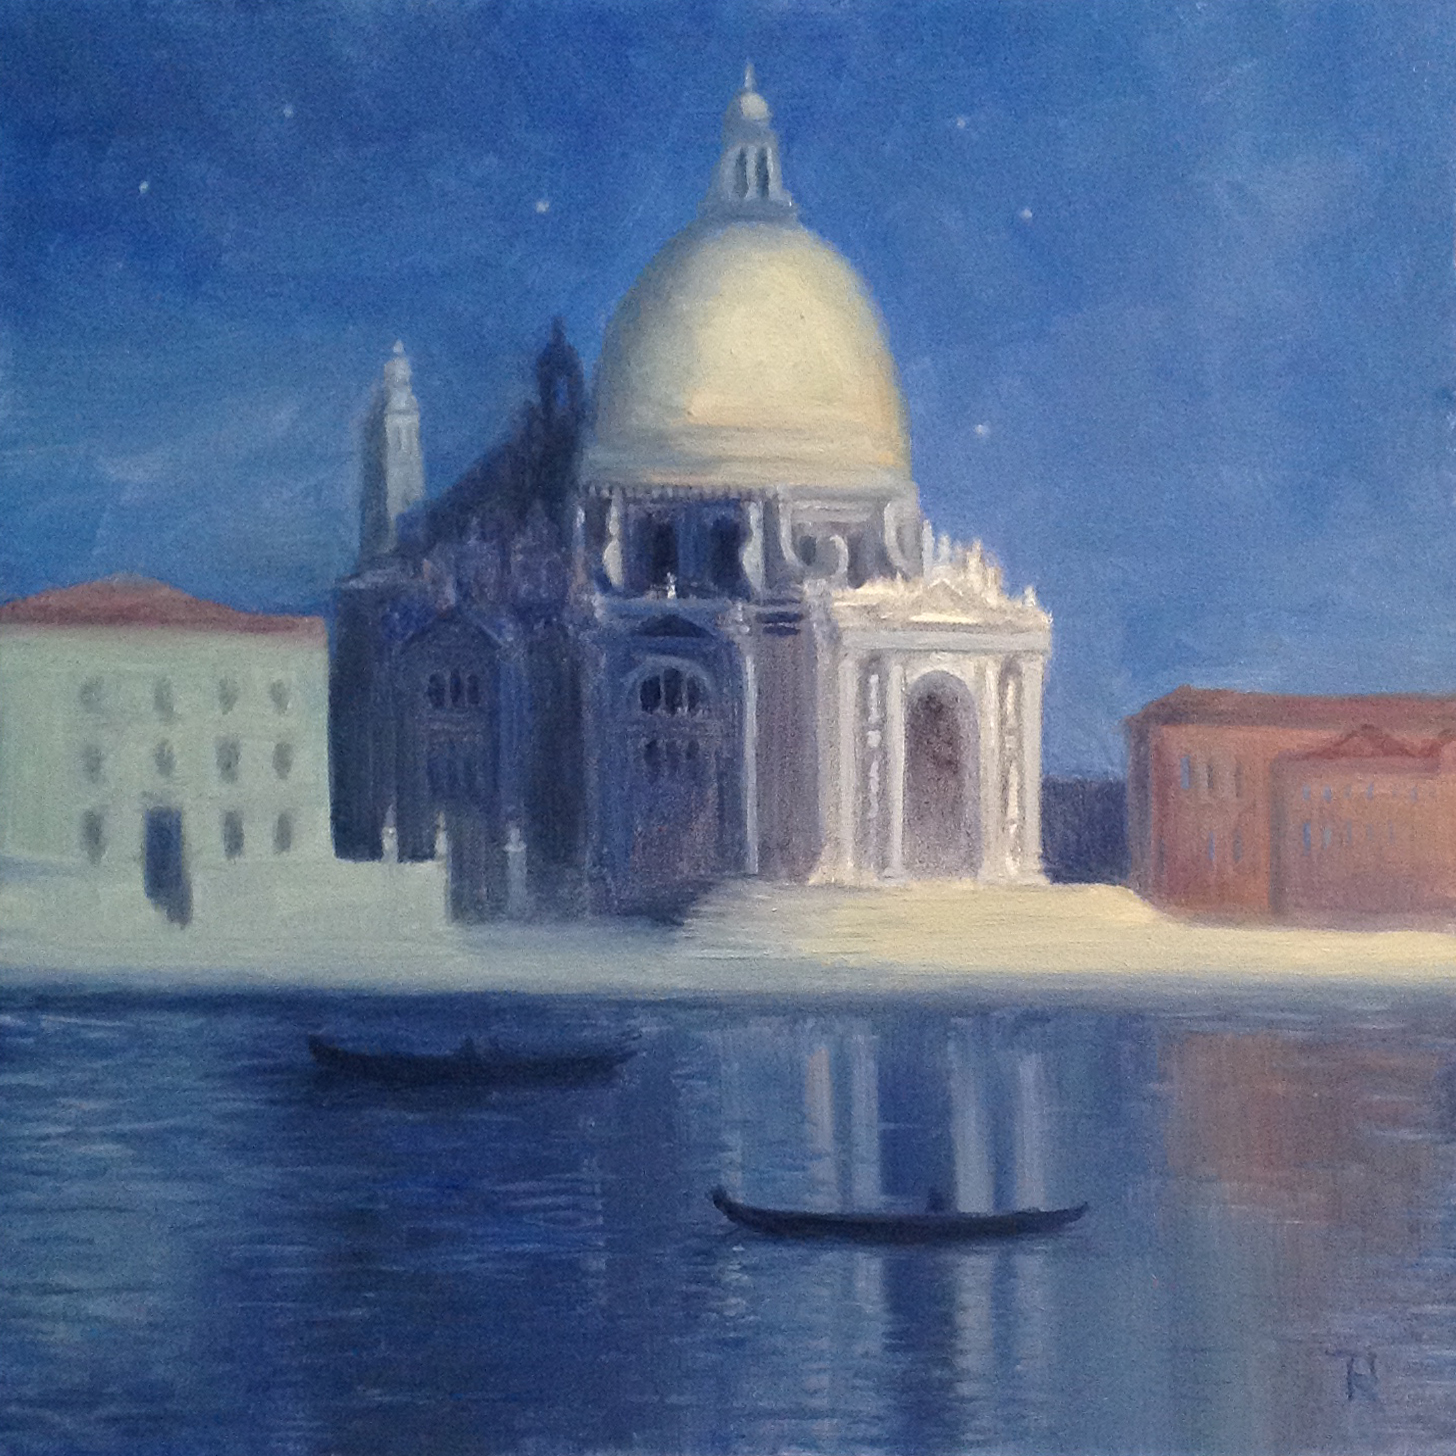 Tatiana Roulin, Moonlit Venice, SOLD